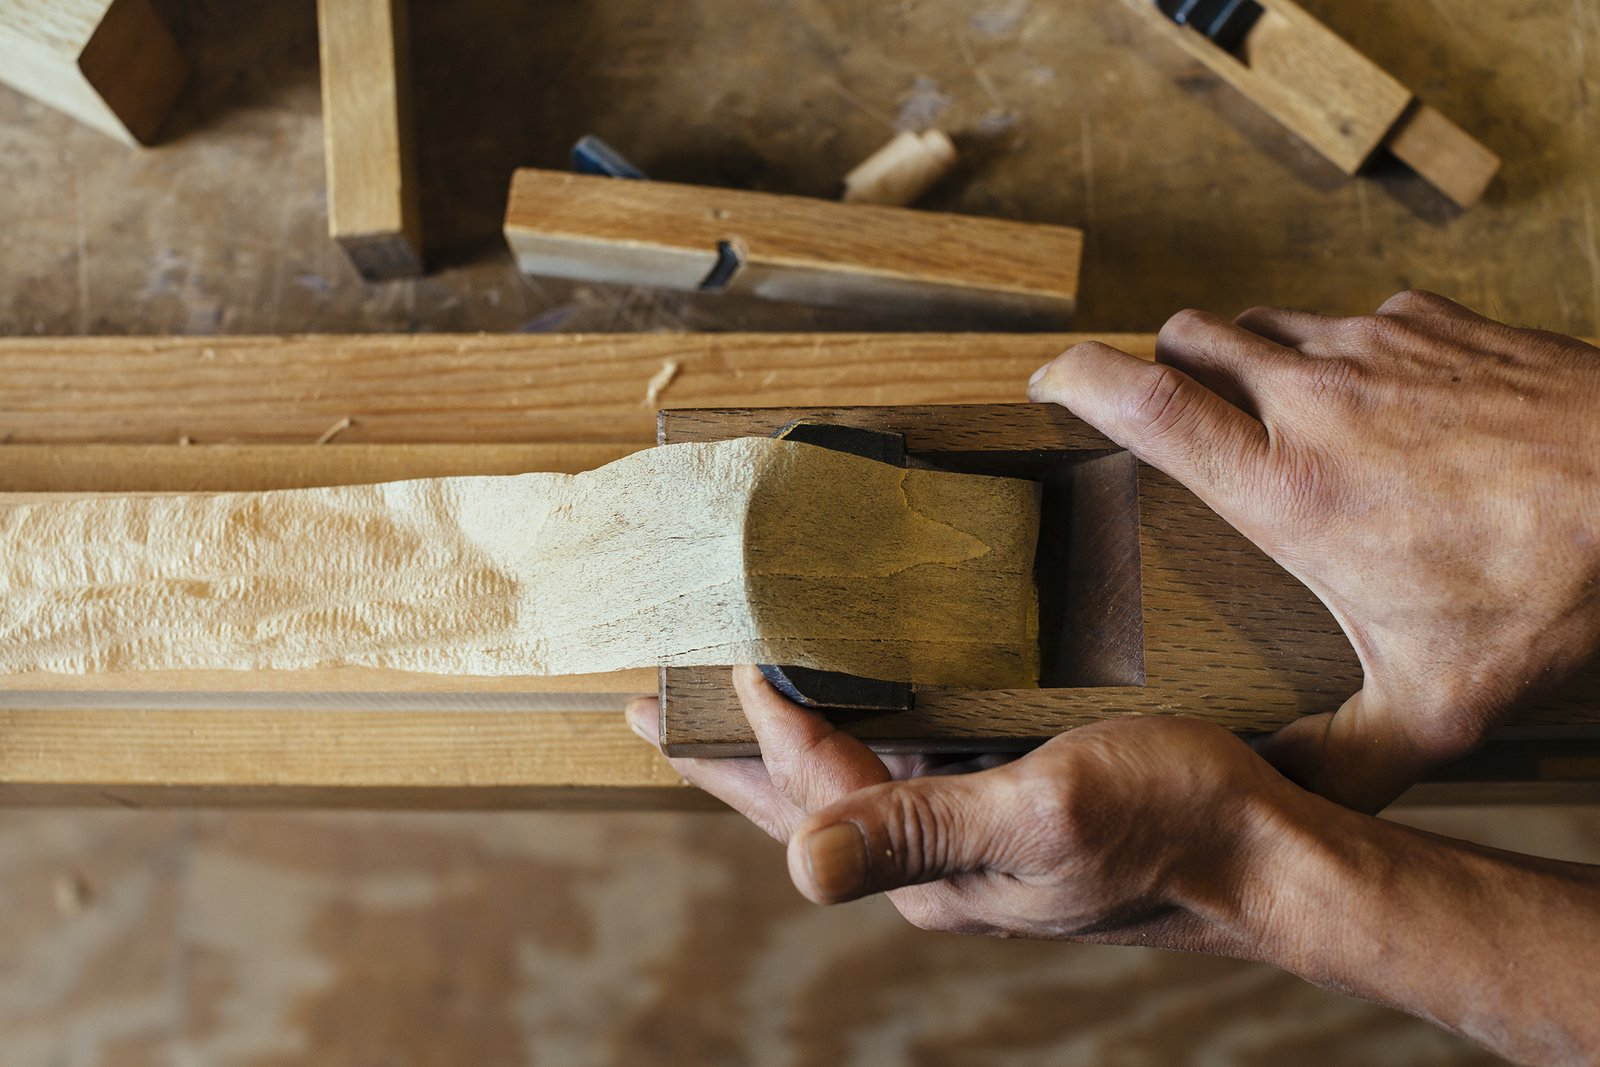 Photo 1 of 9 in How to Shape a Shoji, Step by Step